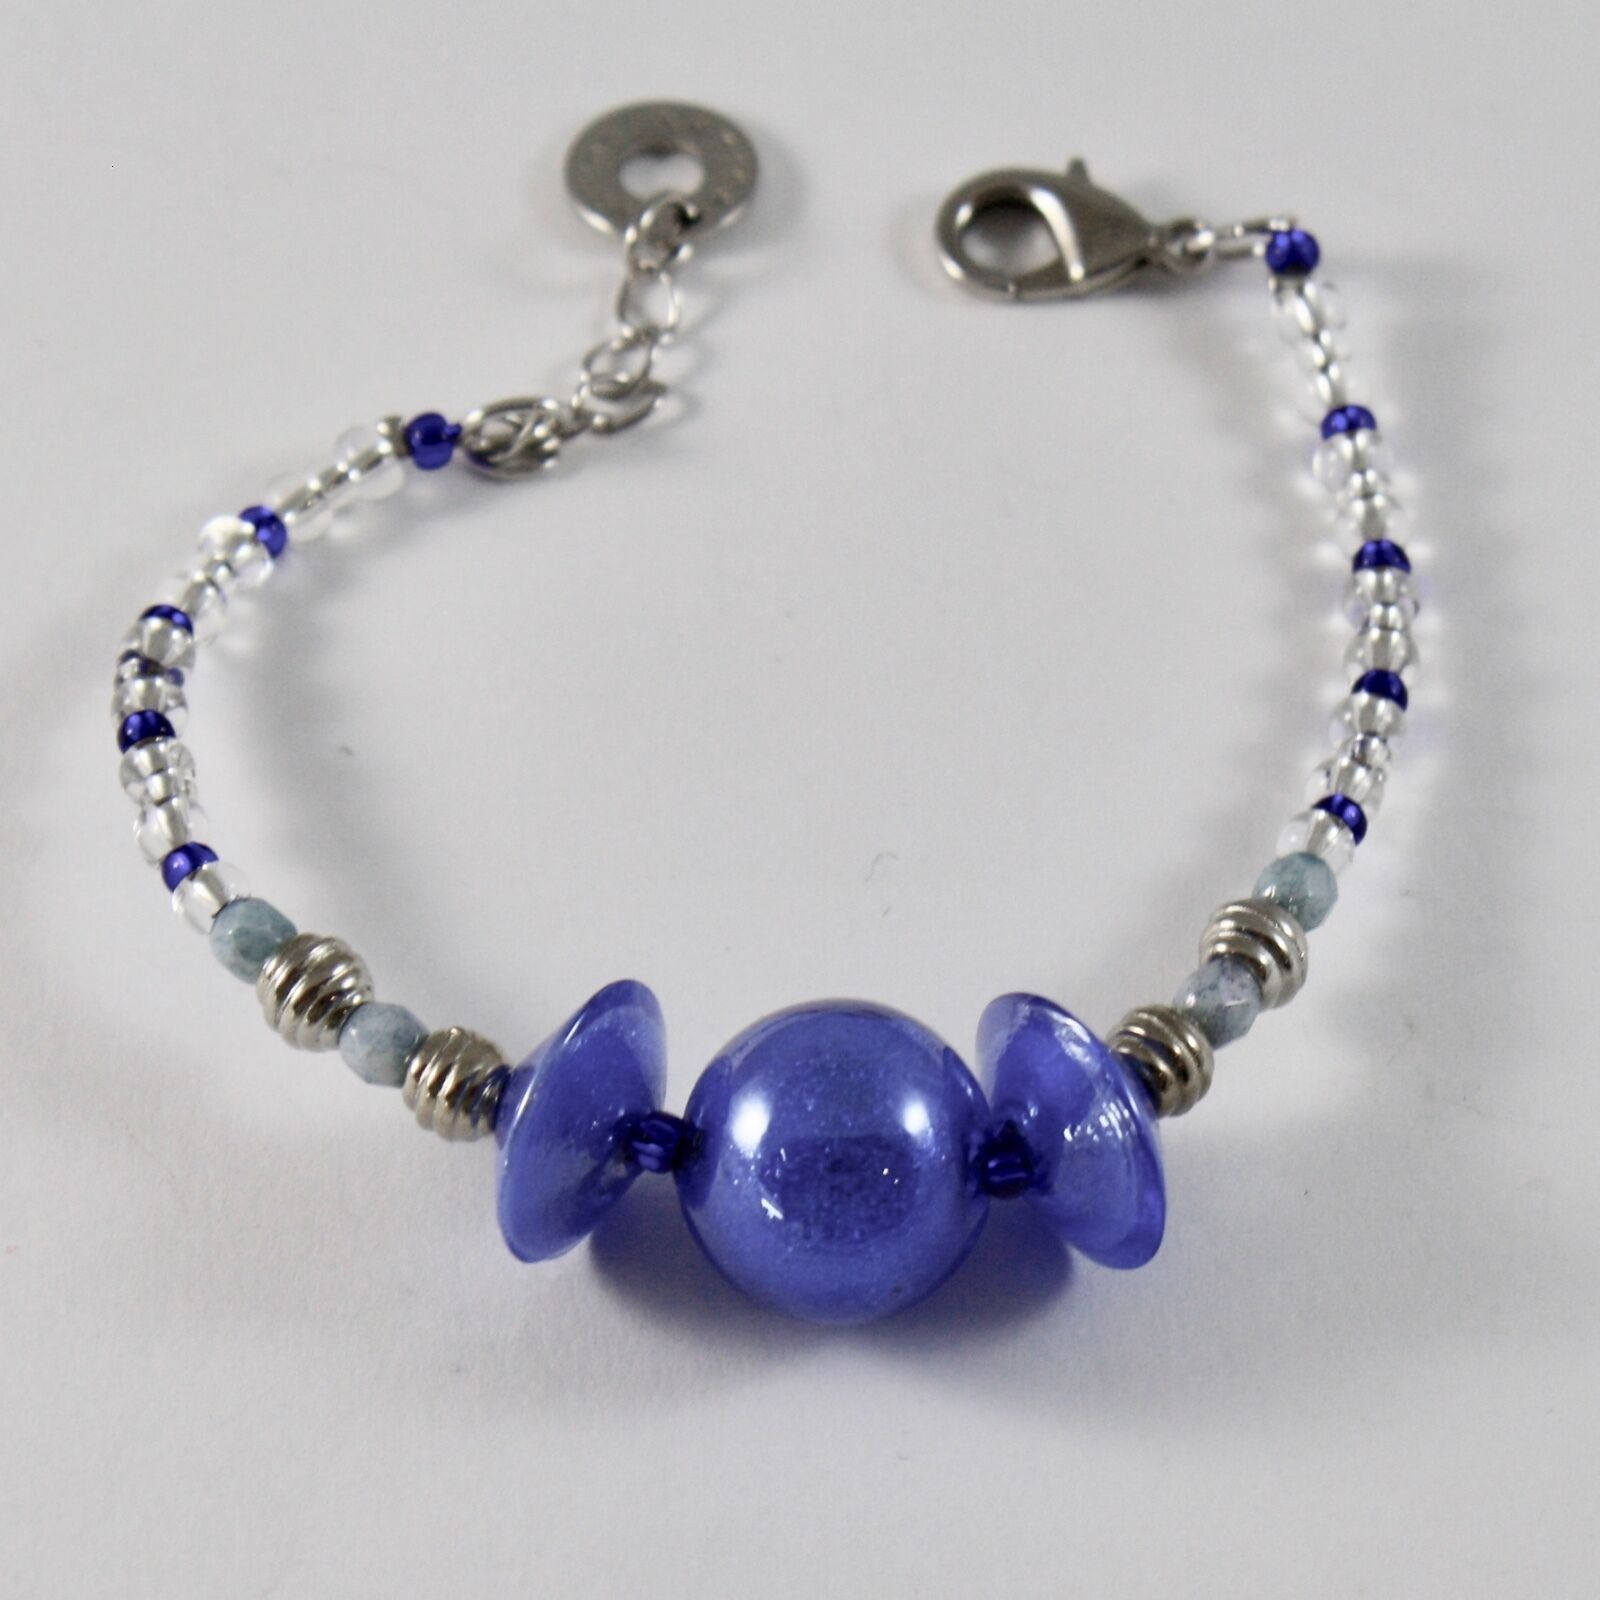 Bracelet Antica Murrina Venezia with Murano Glass Discs Spheres Blue Adjustable